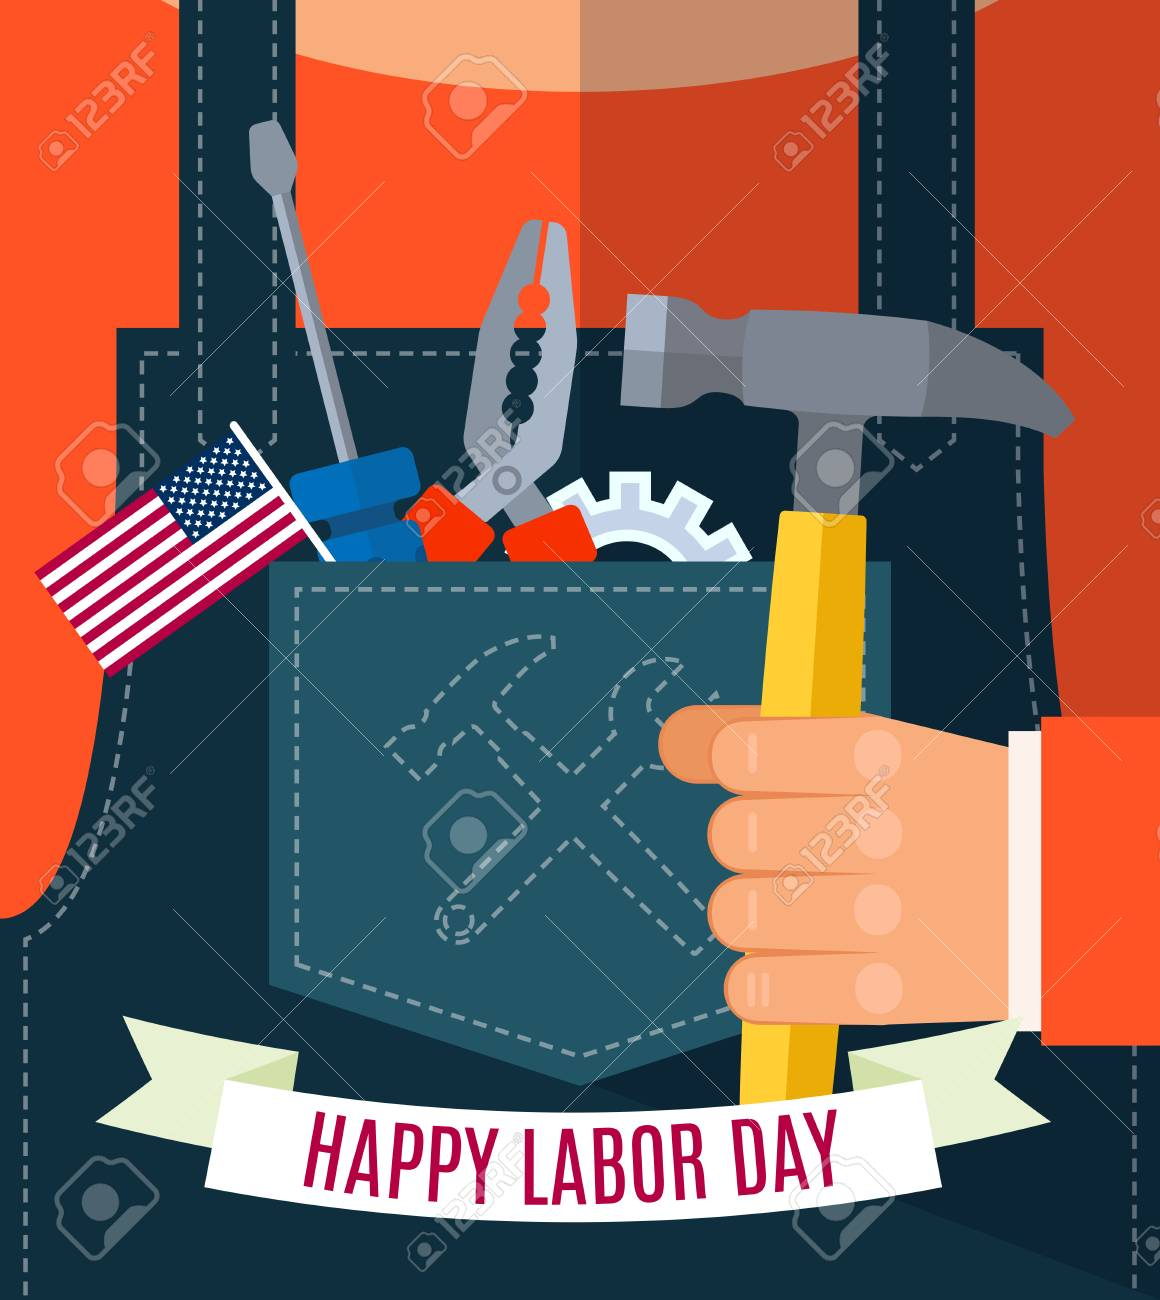 Happy Labor Day Greetings Cards Design Poster Banner Brochure